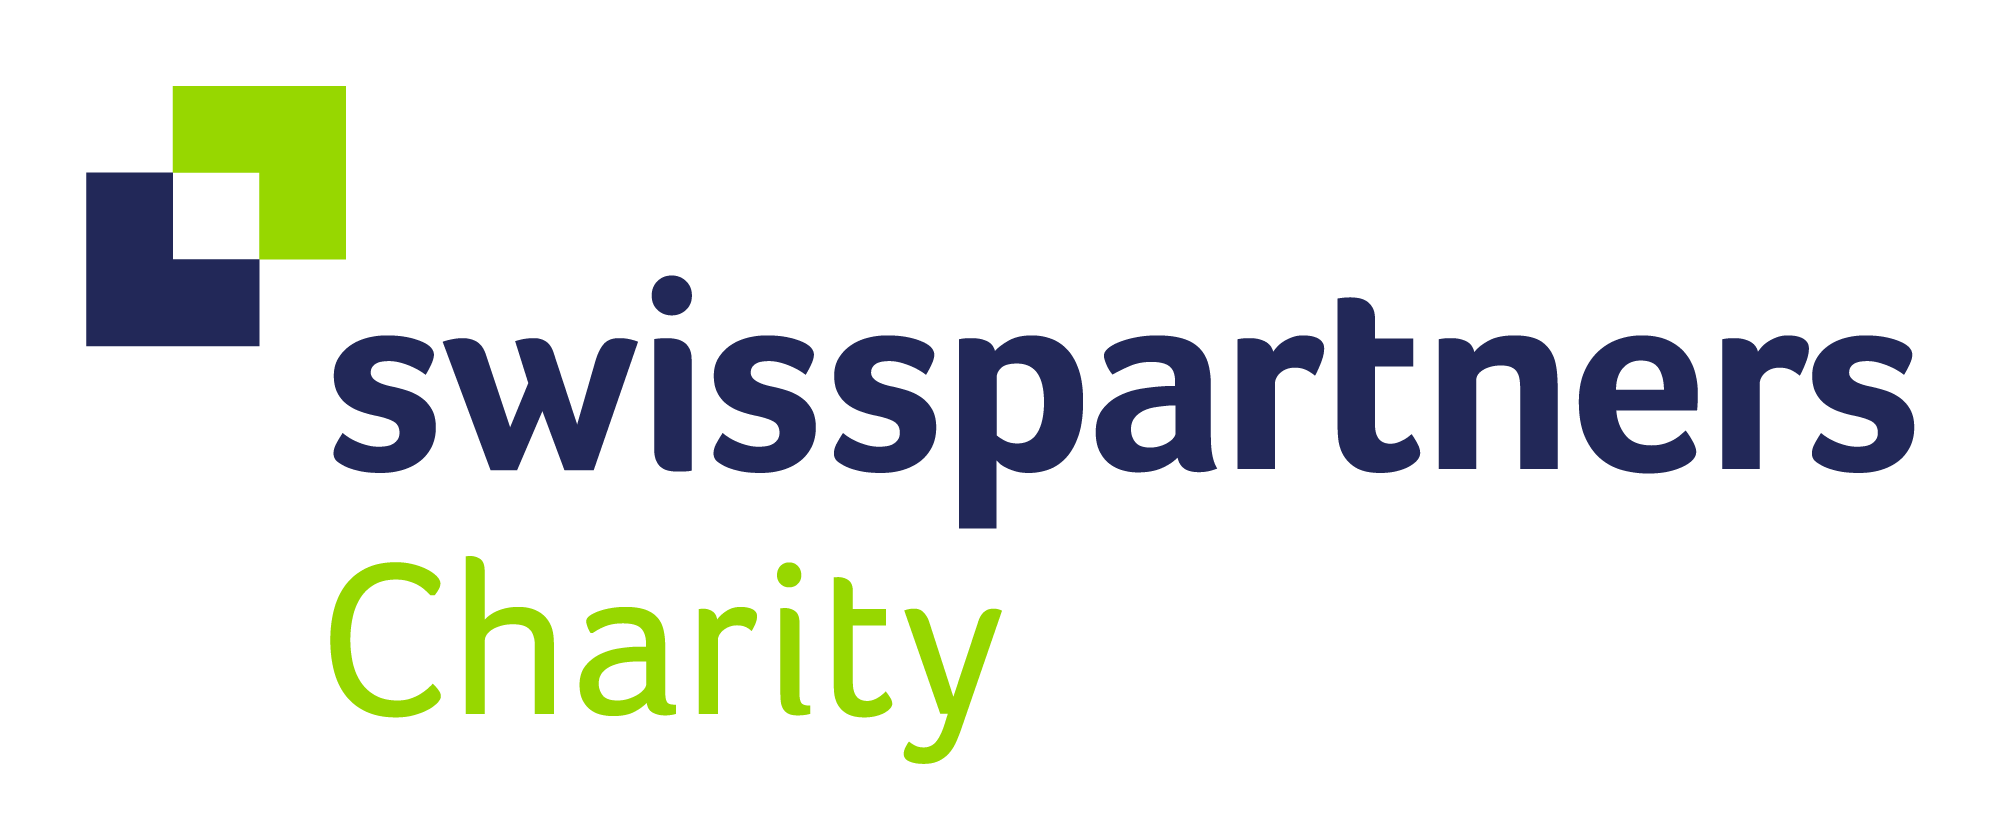 swisspartners charity logo_RGB_light background